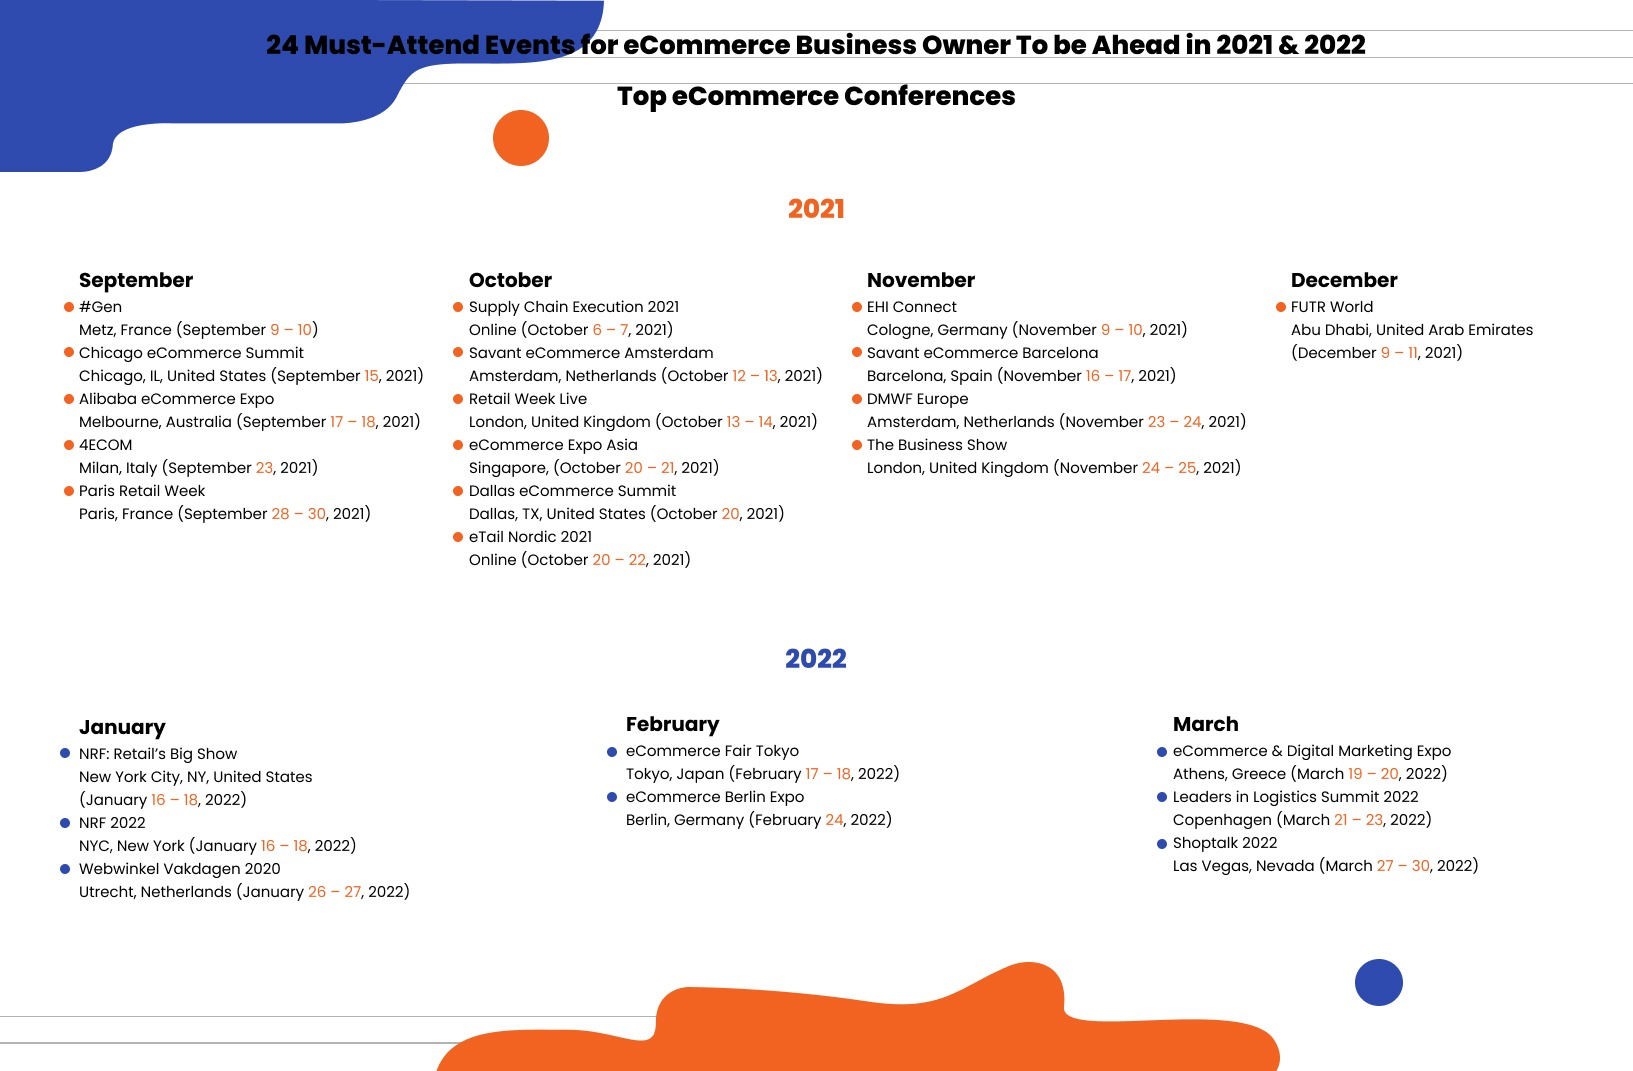 Calendar of 24 Must-Attend Events for eCommerce Business Owner To be Ahead in 2021 & 2022 _ Top eCommerce Conferences